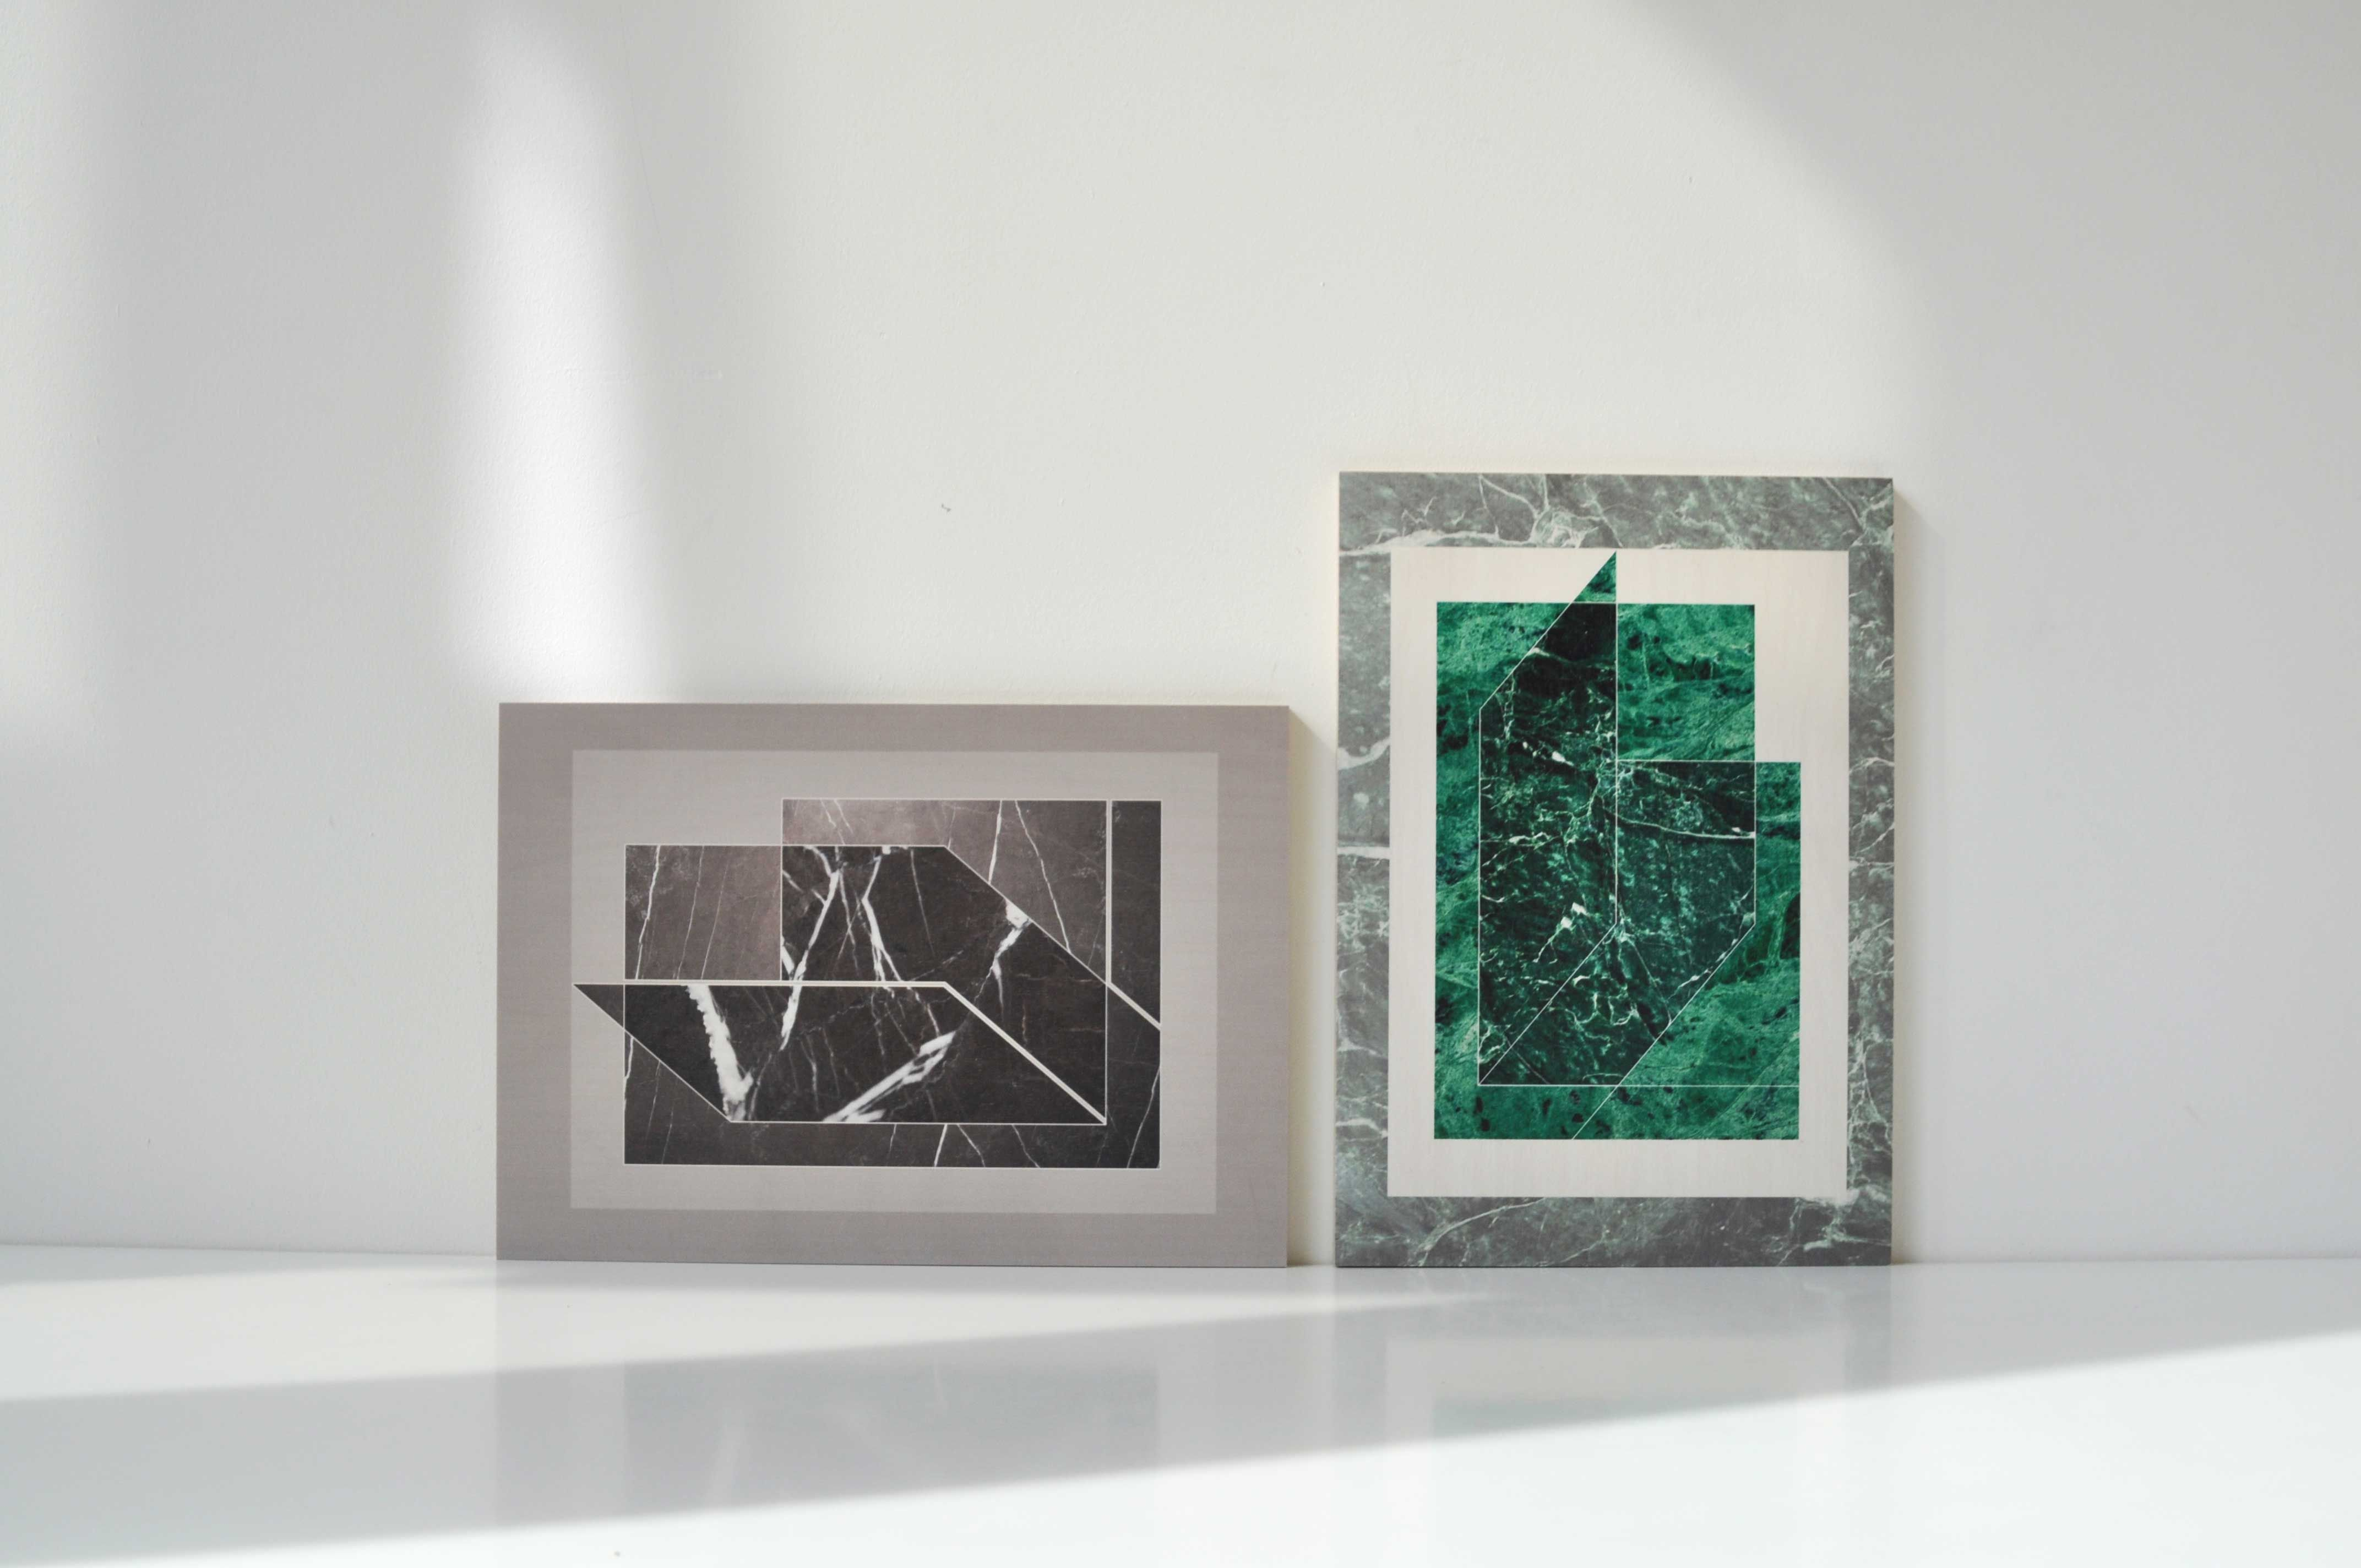 Marble Illustrations printer on timber by Kaan Alpagut